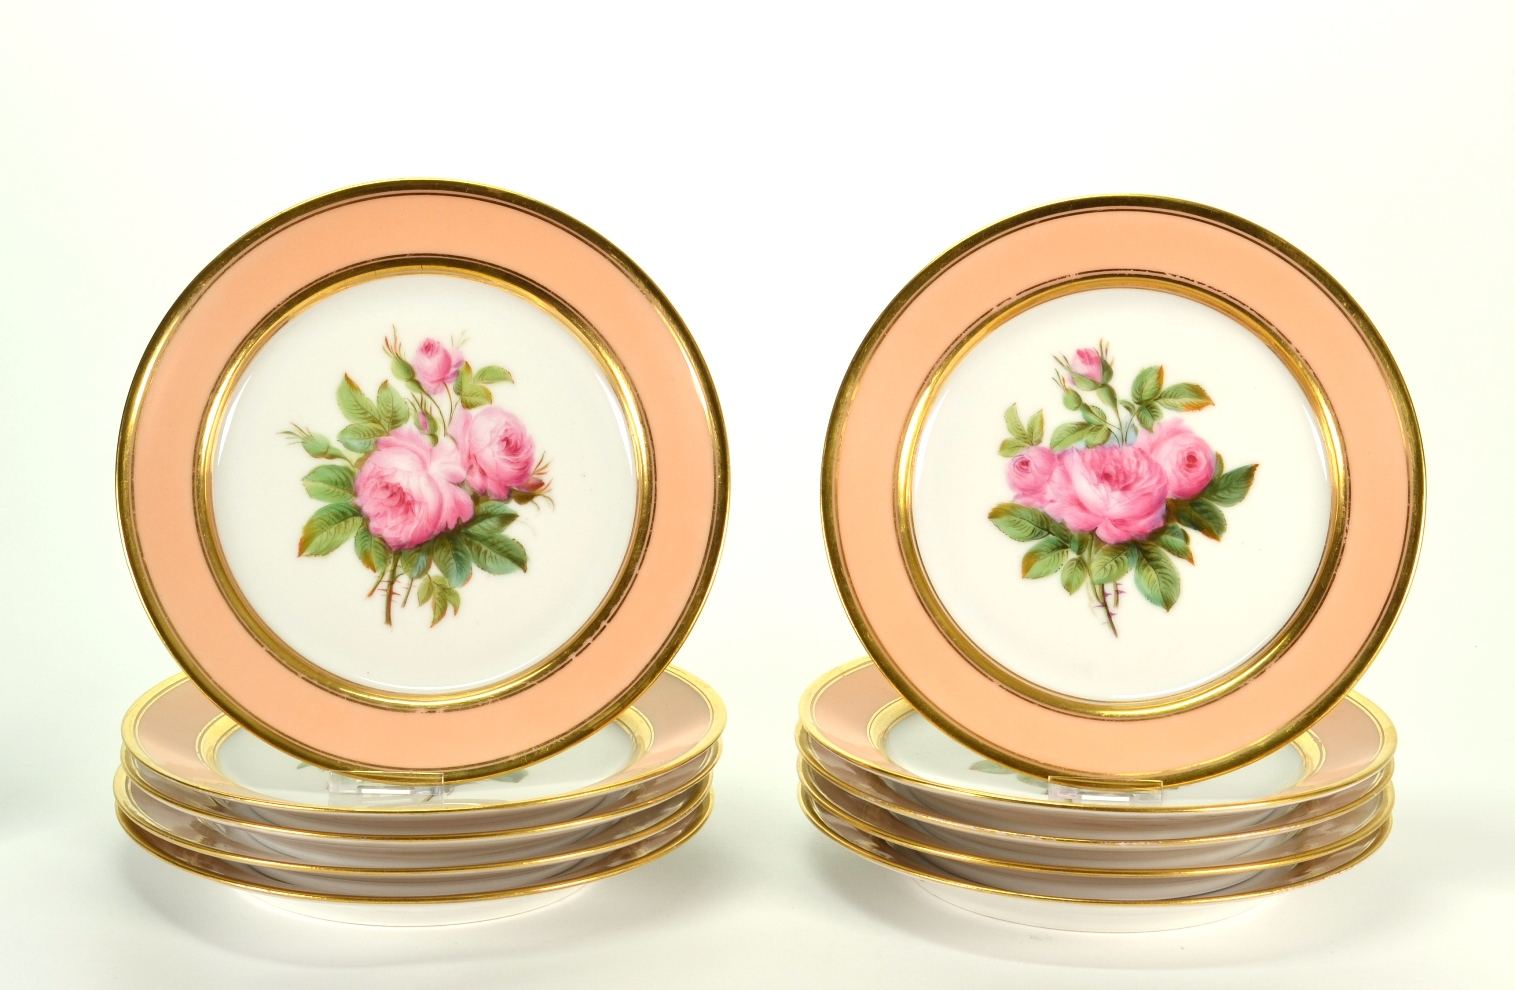 View 8: Set of Ten Old Paris Porcelain Plates